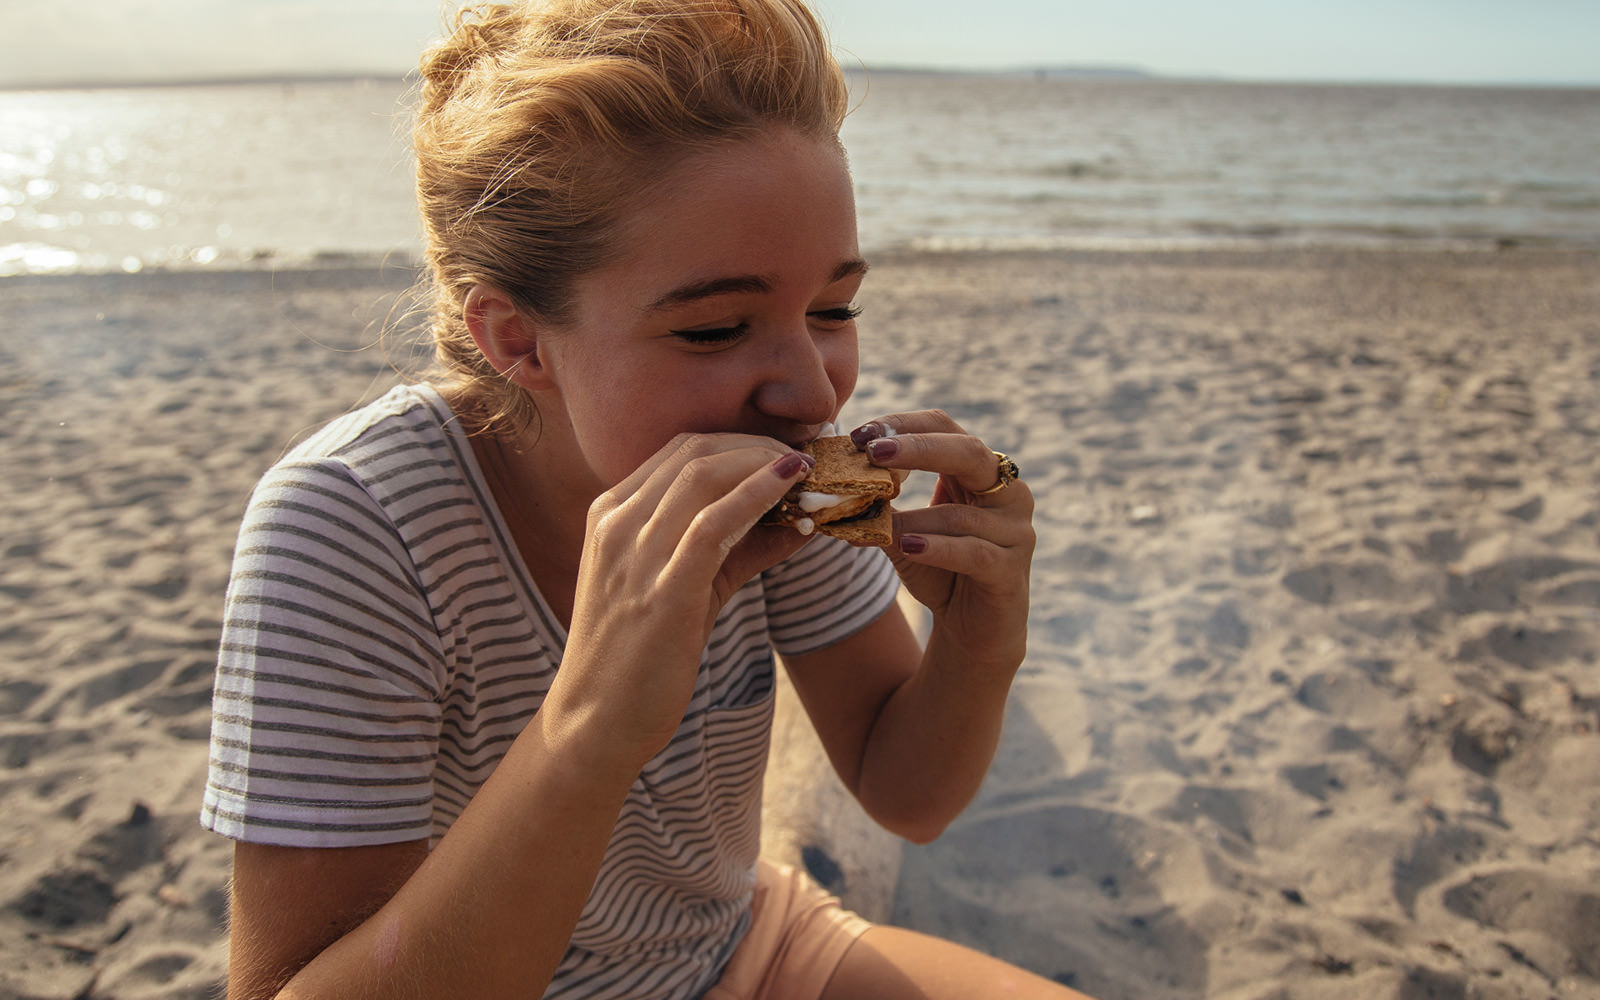 eating a smore